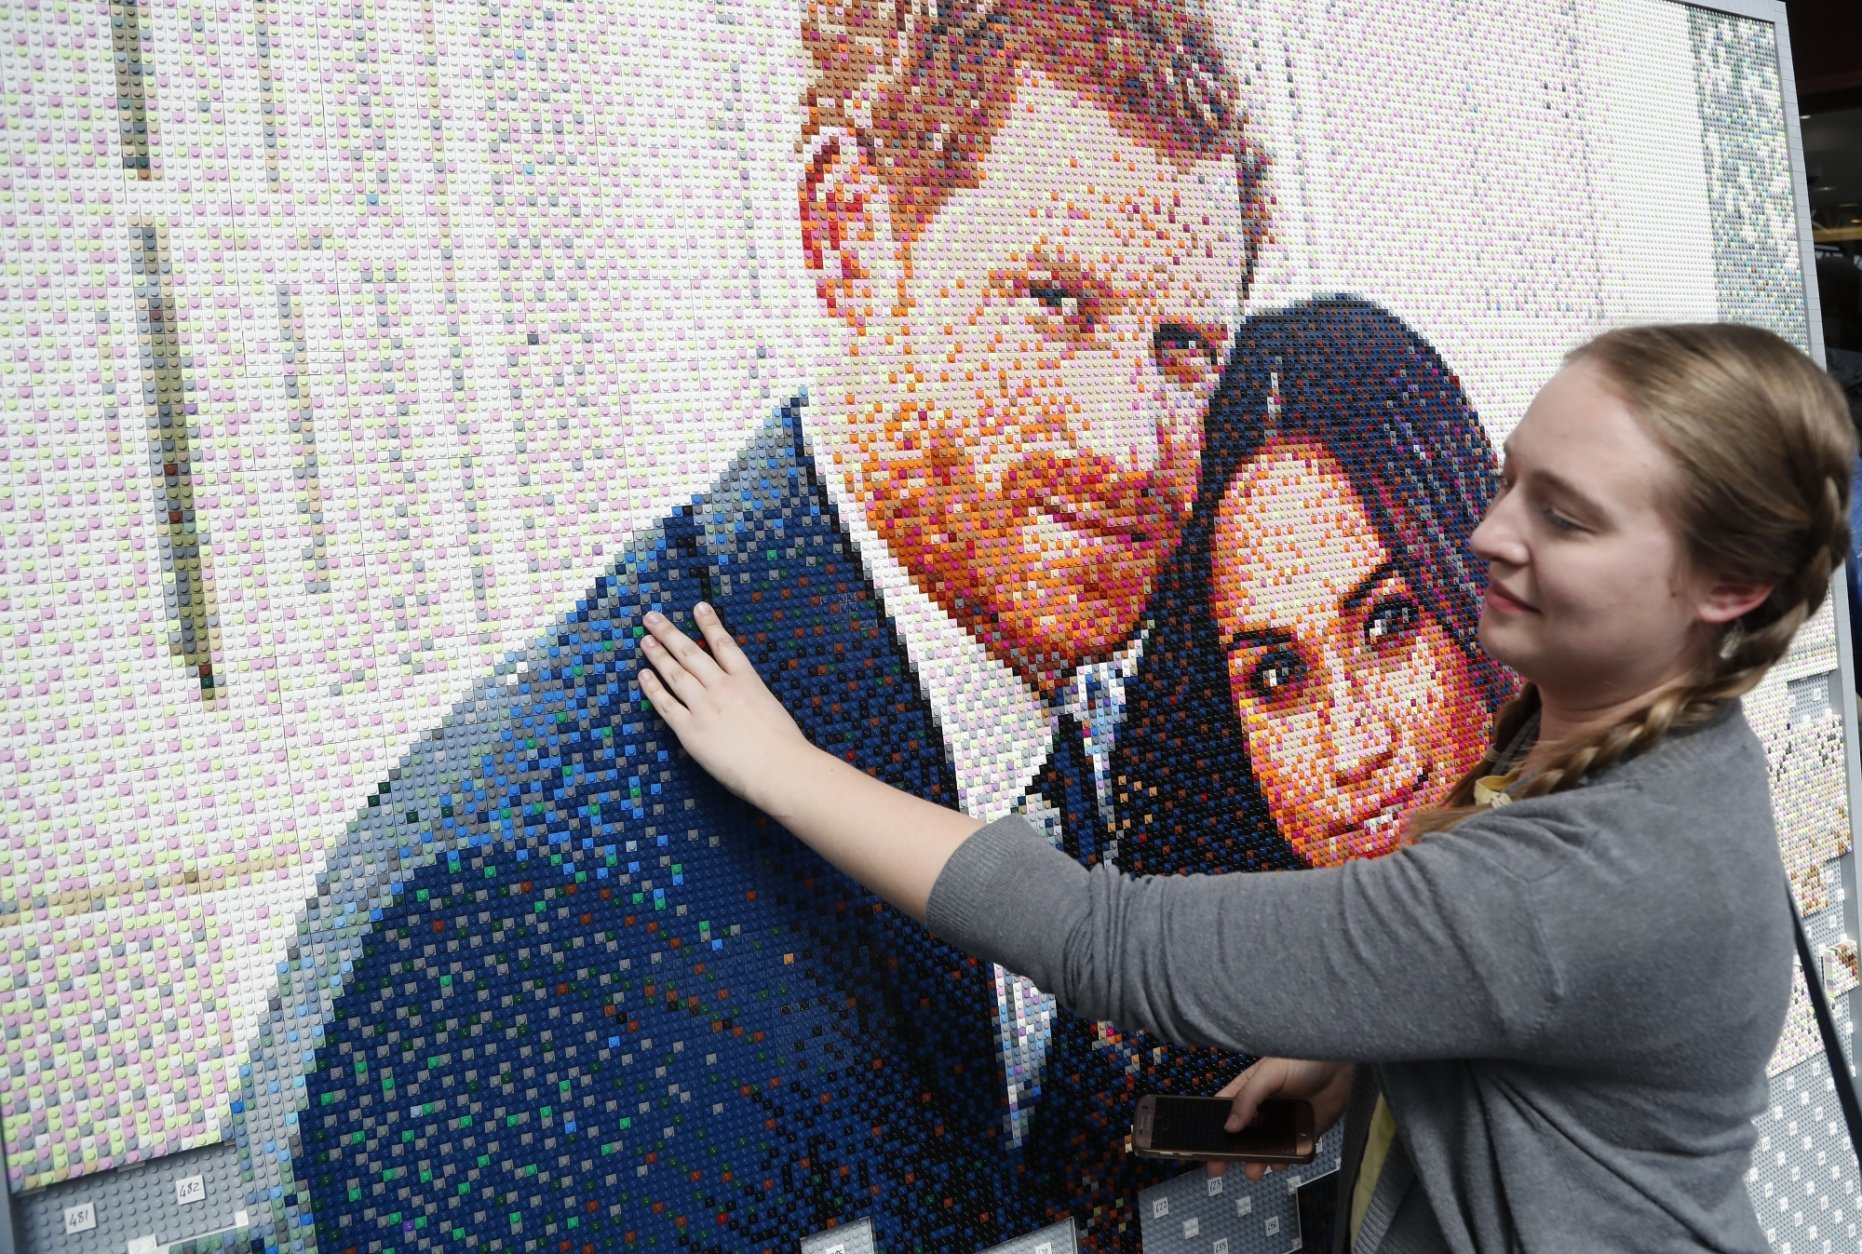 People put bricks in a mosaic of the royal couple in a shopping mall in Windsor, England, Friday, May 18, 2018. Preparations continue in Windsor ahead of the royal wedding of Britain's Prince Harry and Meghan Markle Saturday May 19. (AP Photo/Frank Augstein)